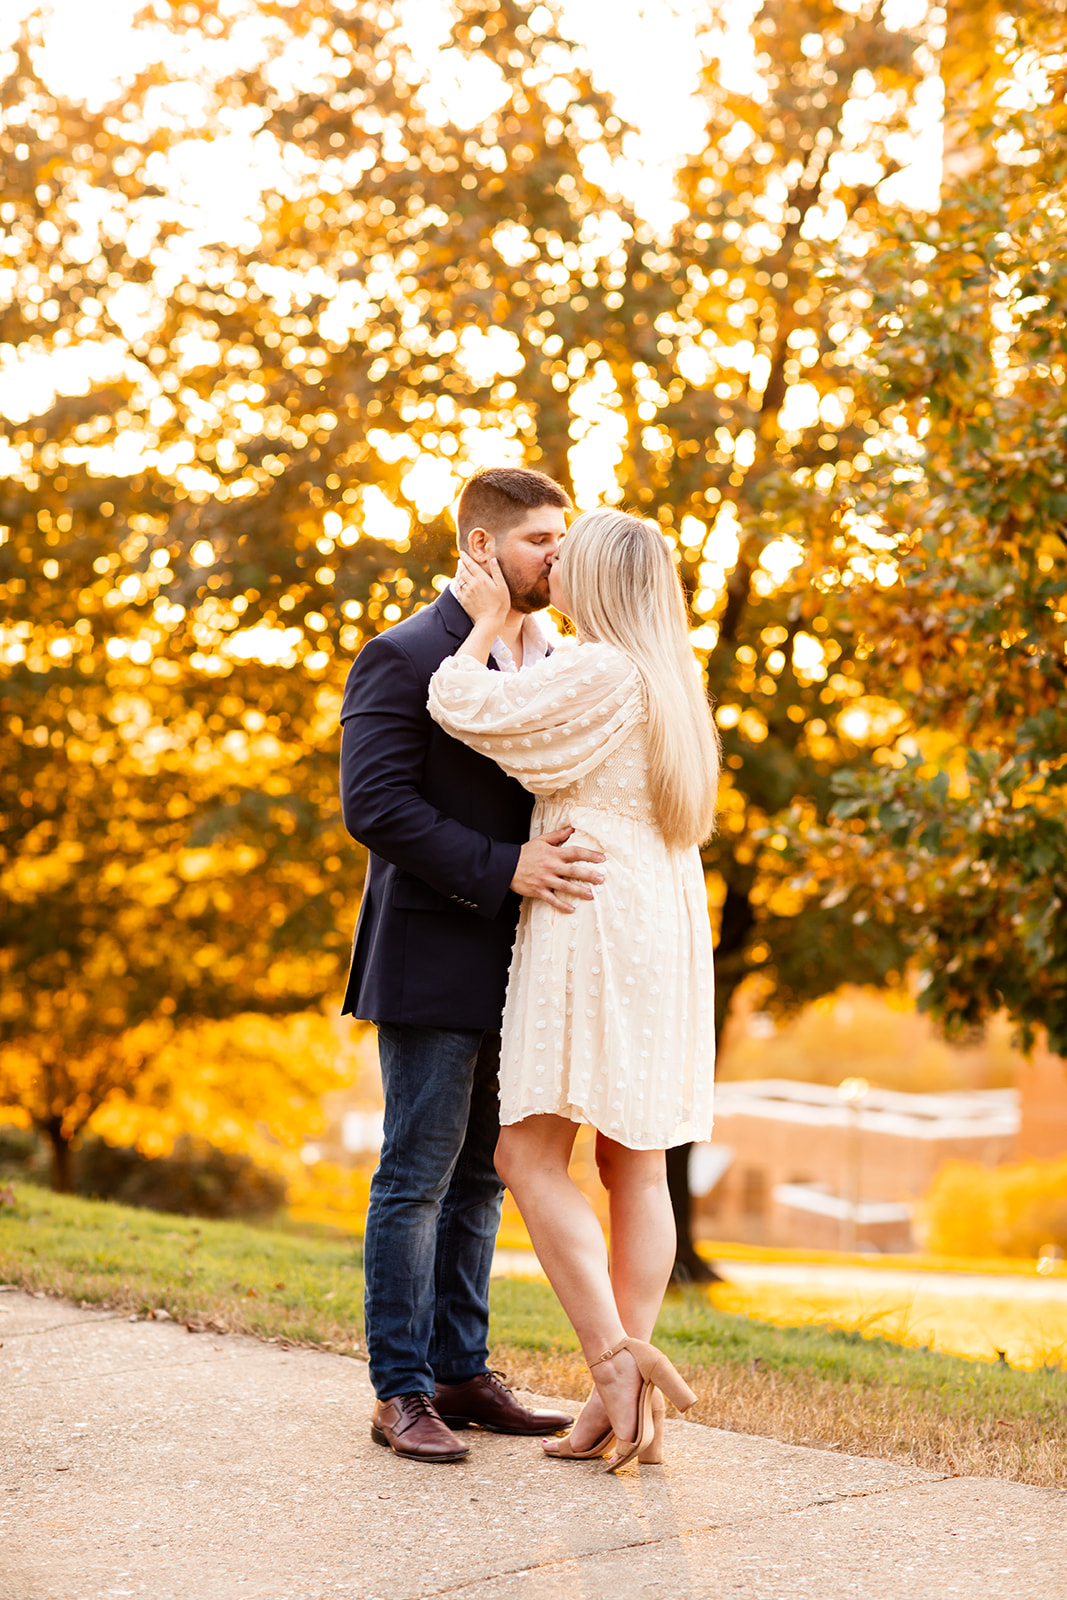 Libby Hill Park Mini Engagement Shoot at Golden Hour - Image Property of www.j-dphoto.com